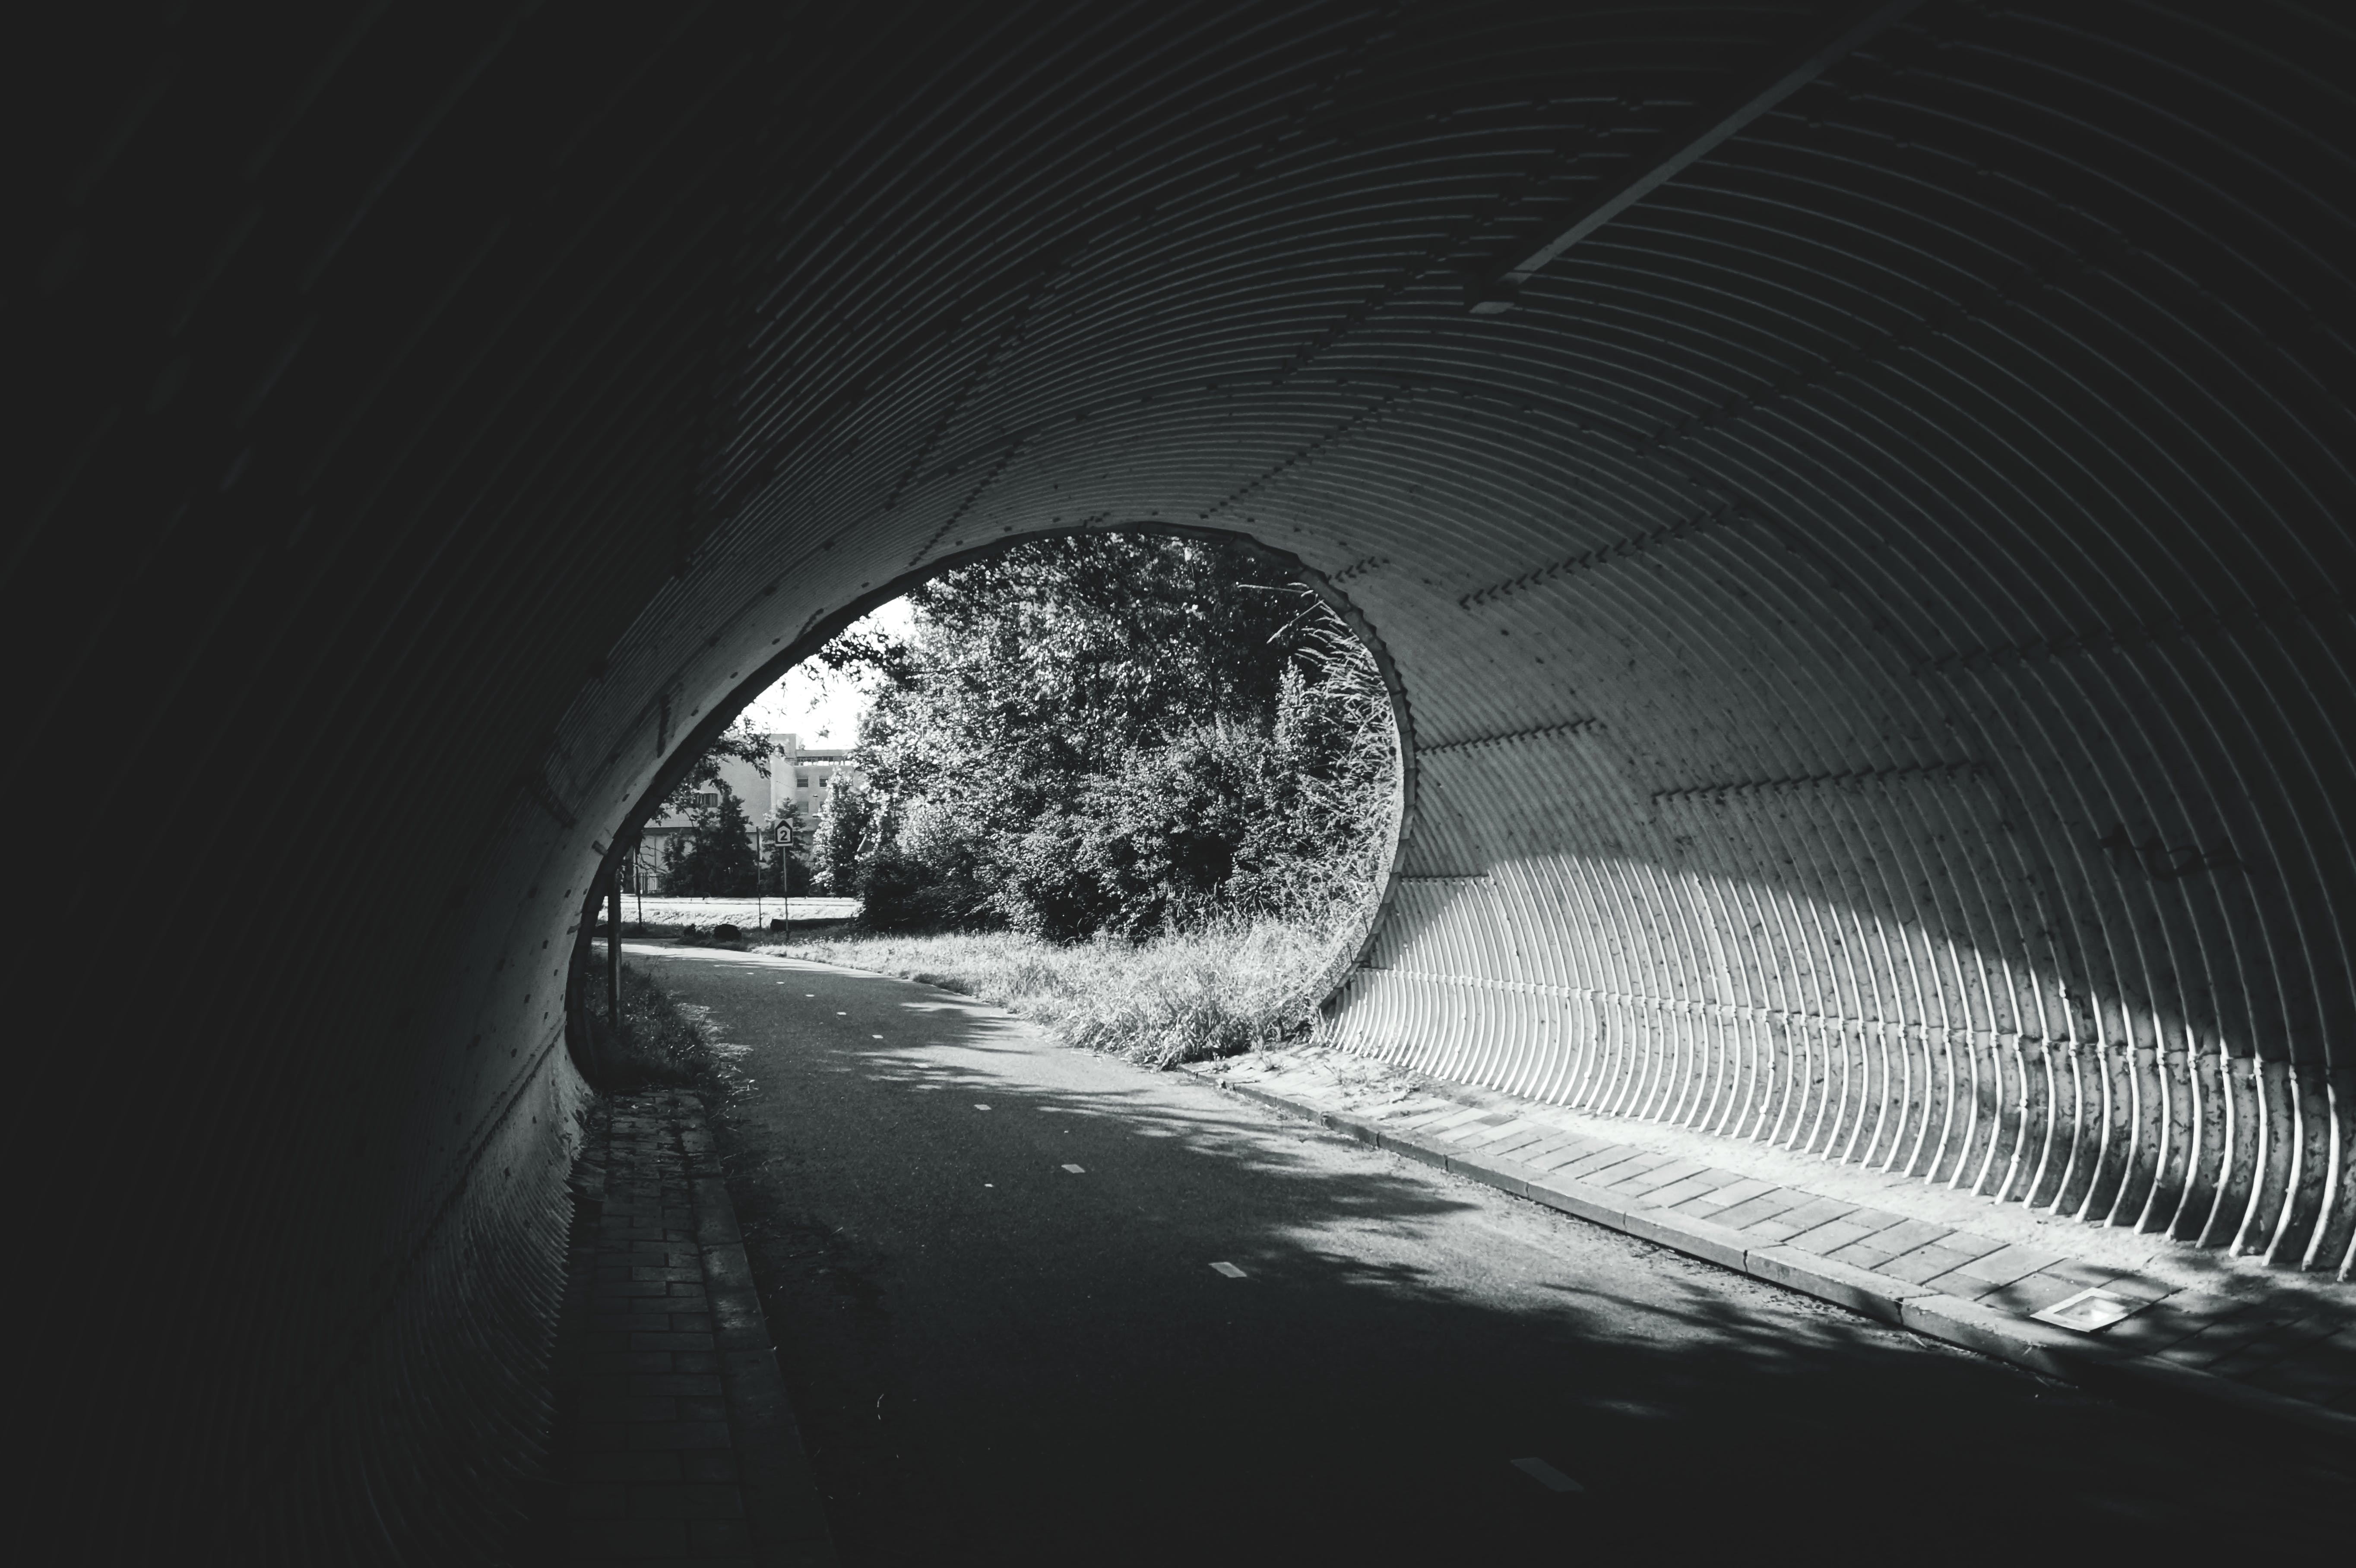 Free stock photo of light, black-and-white, road, landscape